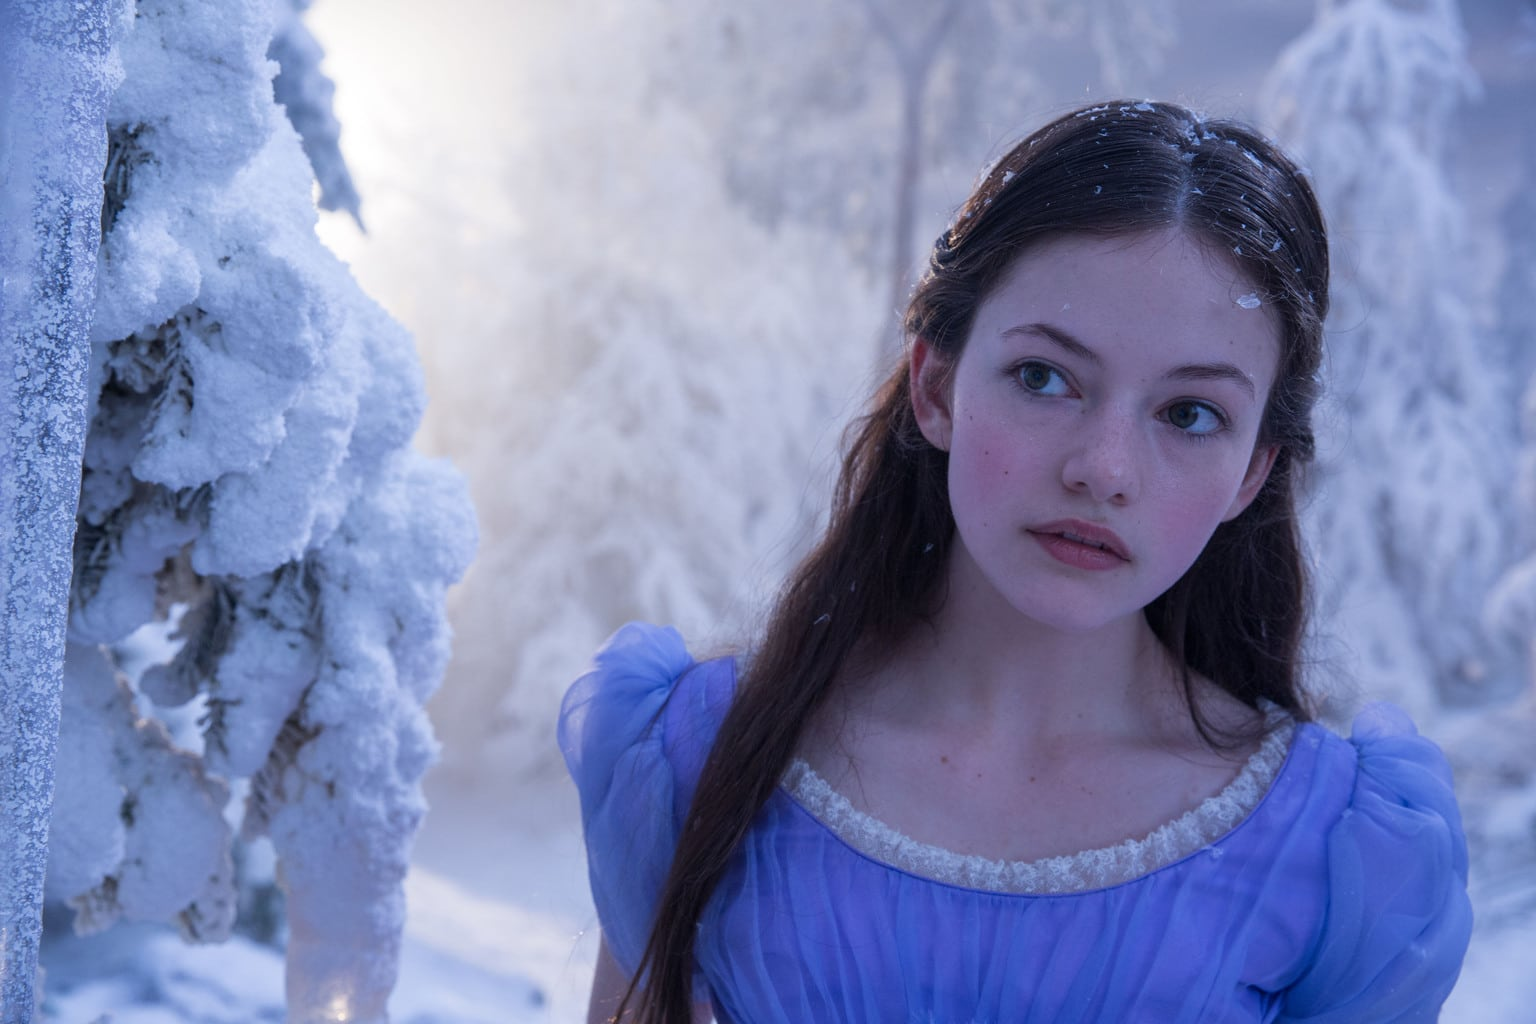 Mackenzie Foy Interview - Disney's Nutcracker and the Four Realms - Mackenzie Foy's favorite realm